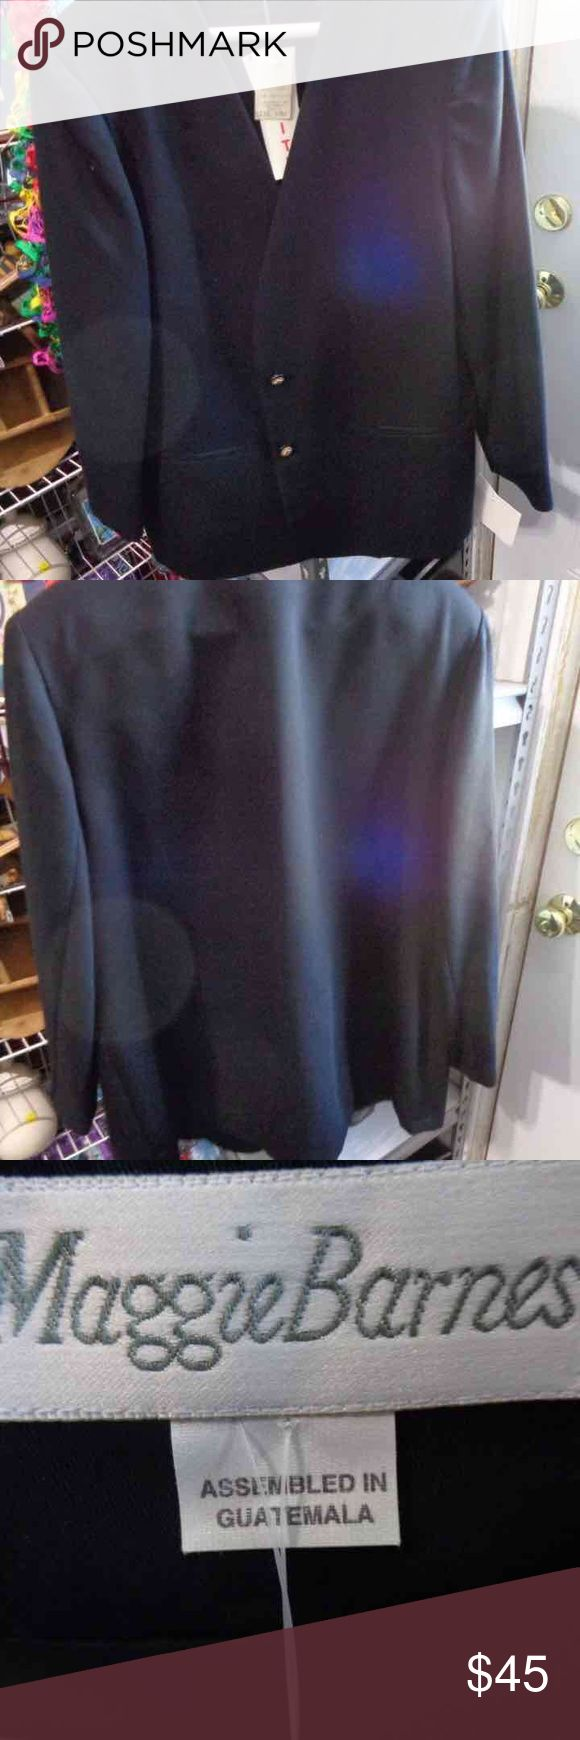 New Ladies Black Blazers Button Sleeves New Size 18W Ladies Black Blazers Button Long Sleeves Career by Maggie Barnes Nice two button blazer. This is a great bargain these usually cost 70 plus! Maggie Barnes Jackets & Coats Blazers